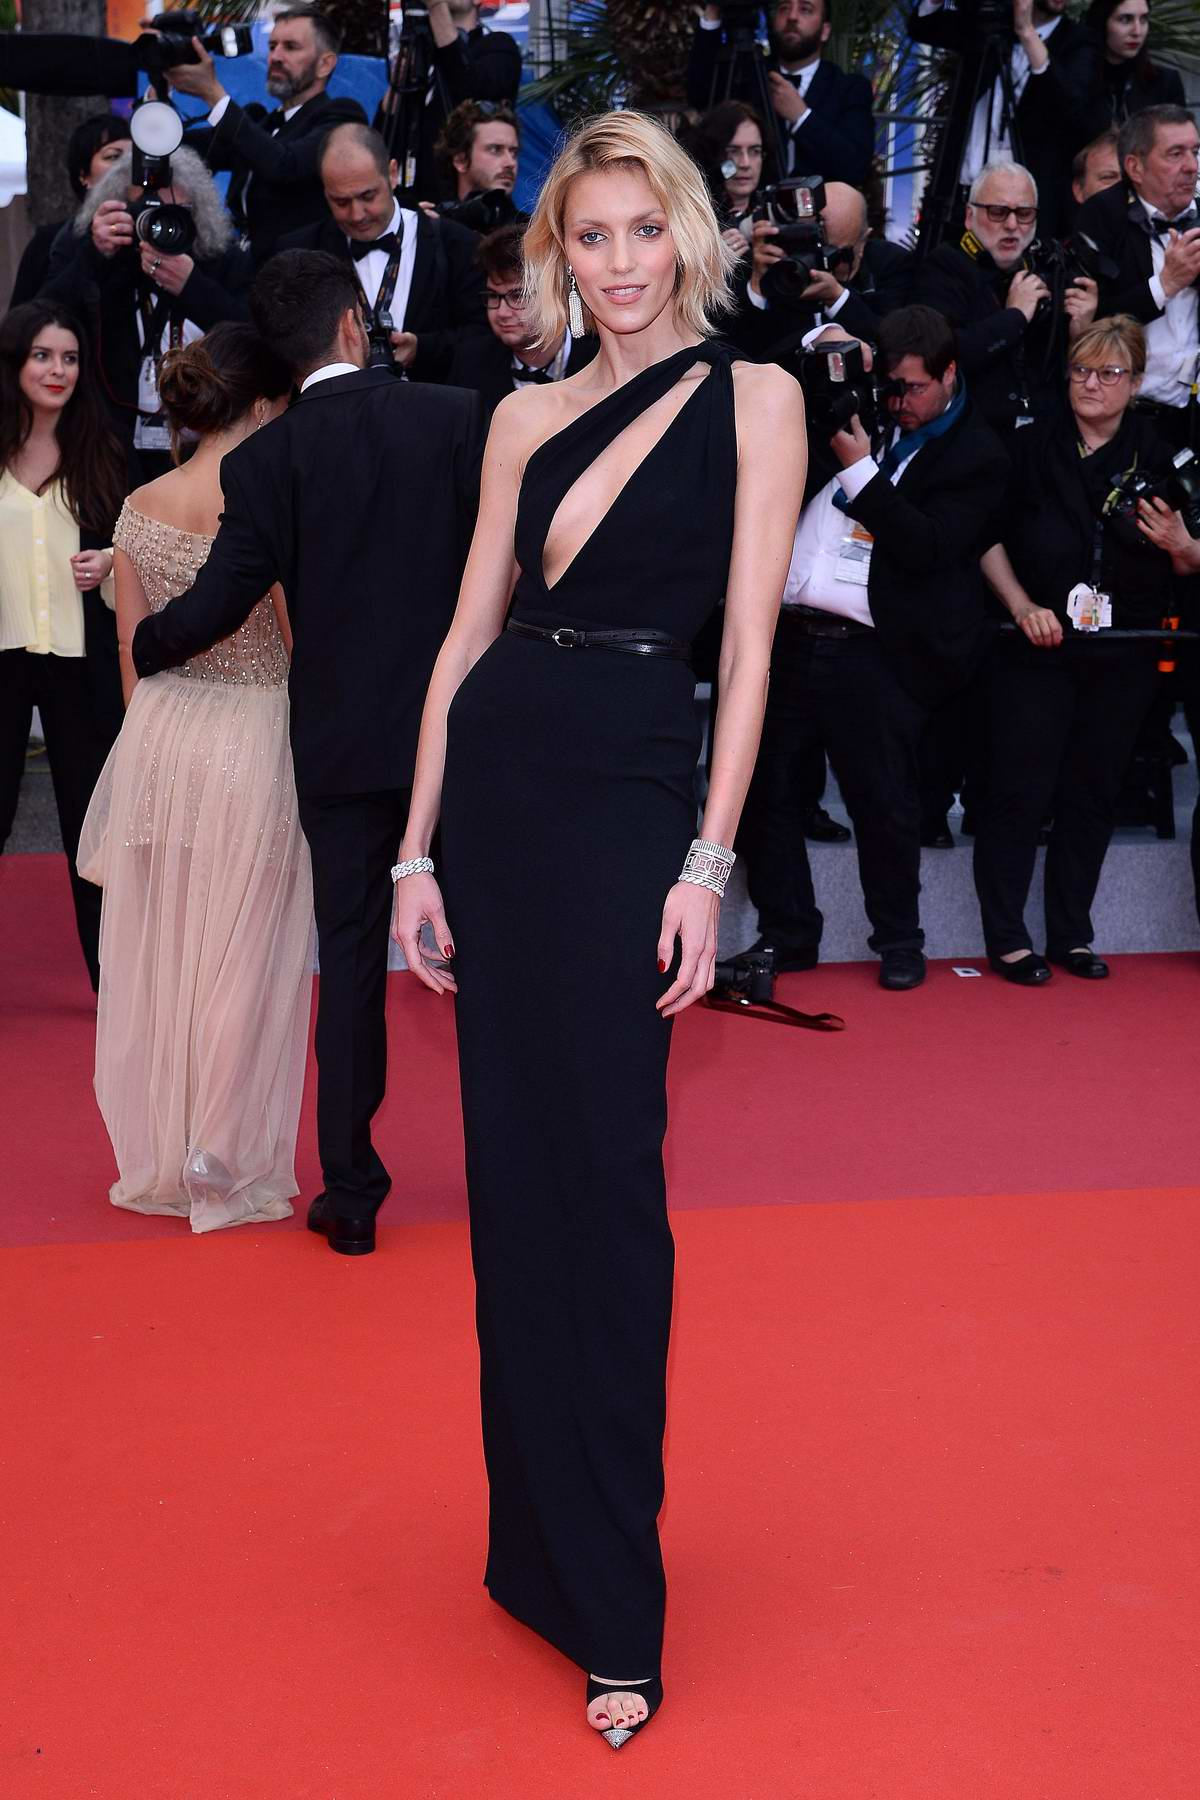 Anja Rubik attends the screening of 'A Hidden Life' during the 72nd annual Cannes Film Festival in Cannes, France